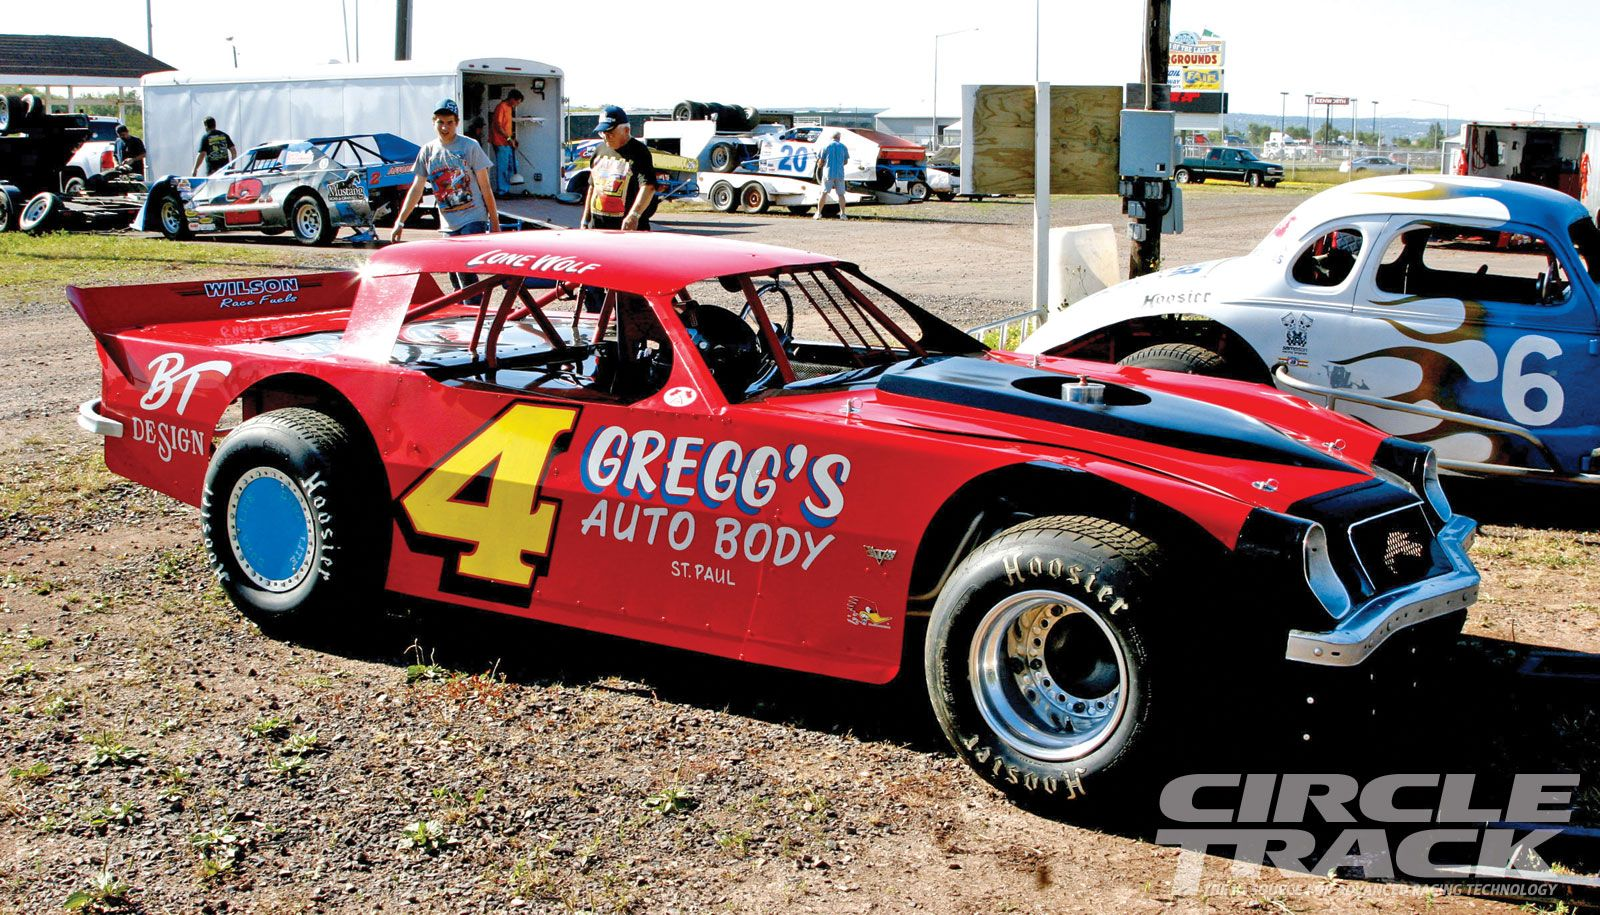 CIRCLE TRACK RACE CAR - Yahoo Image Search Results | dirt ...